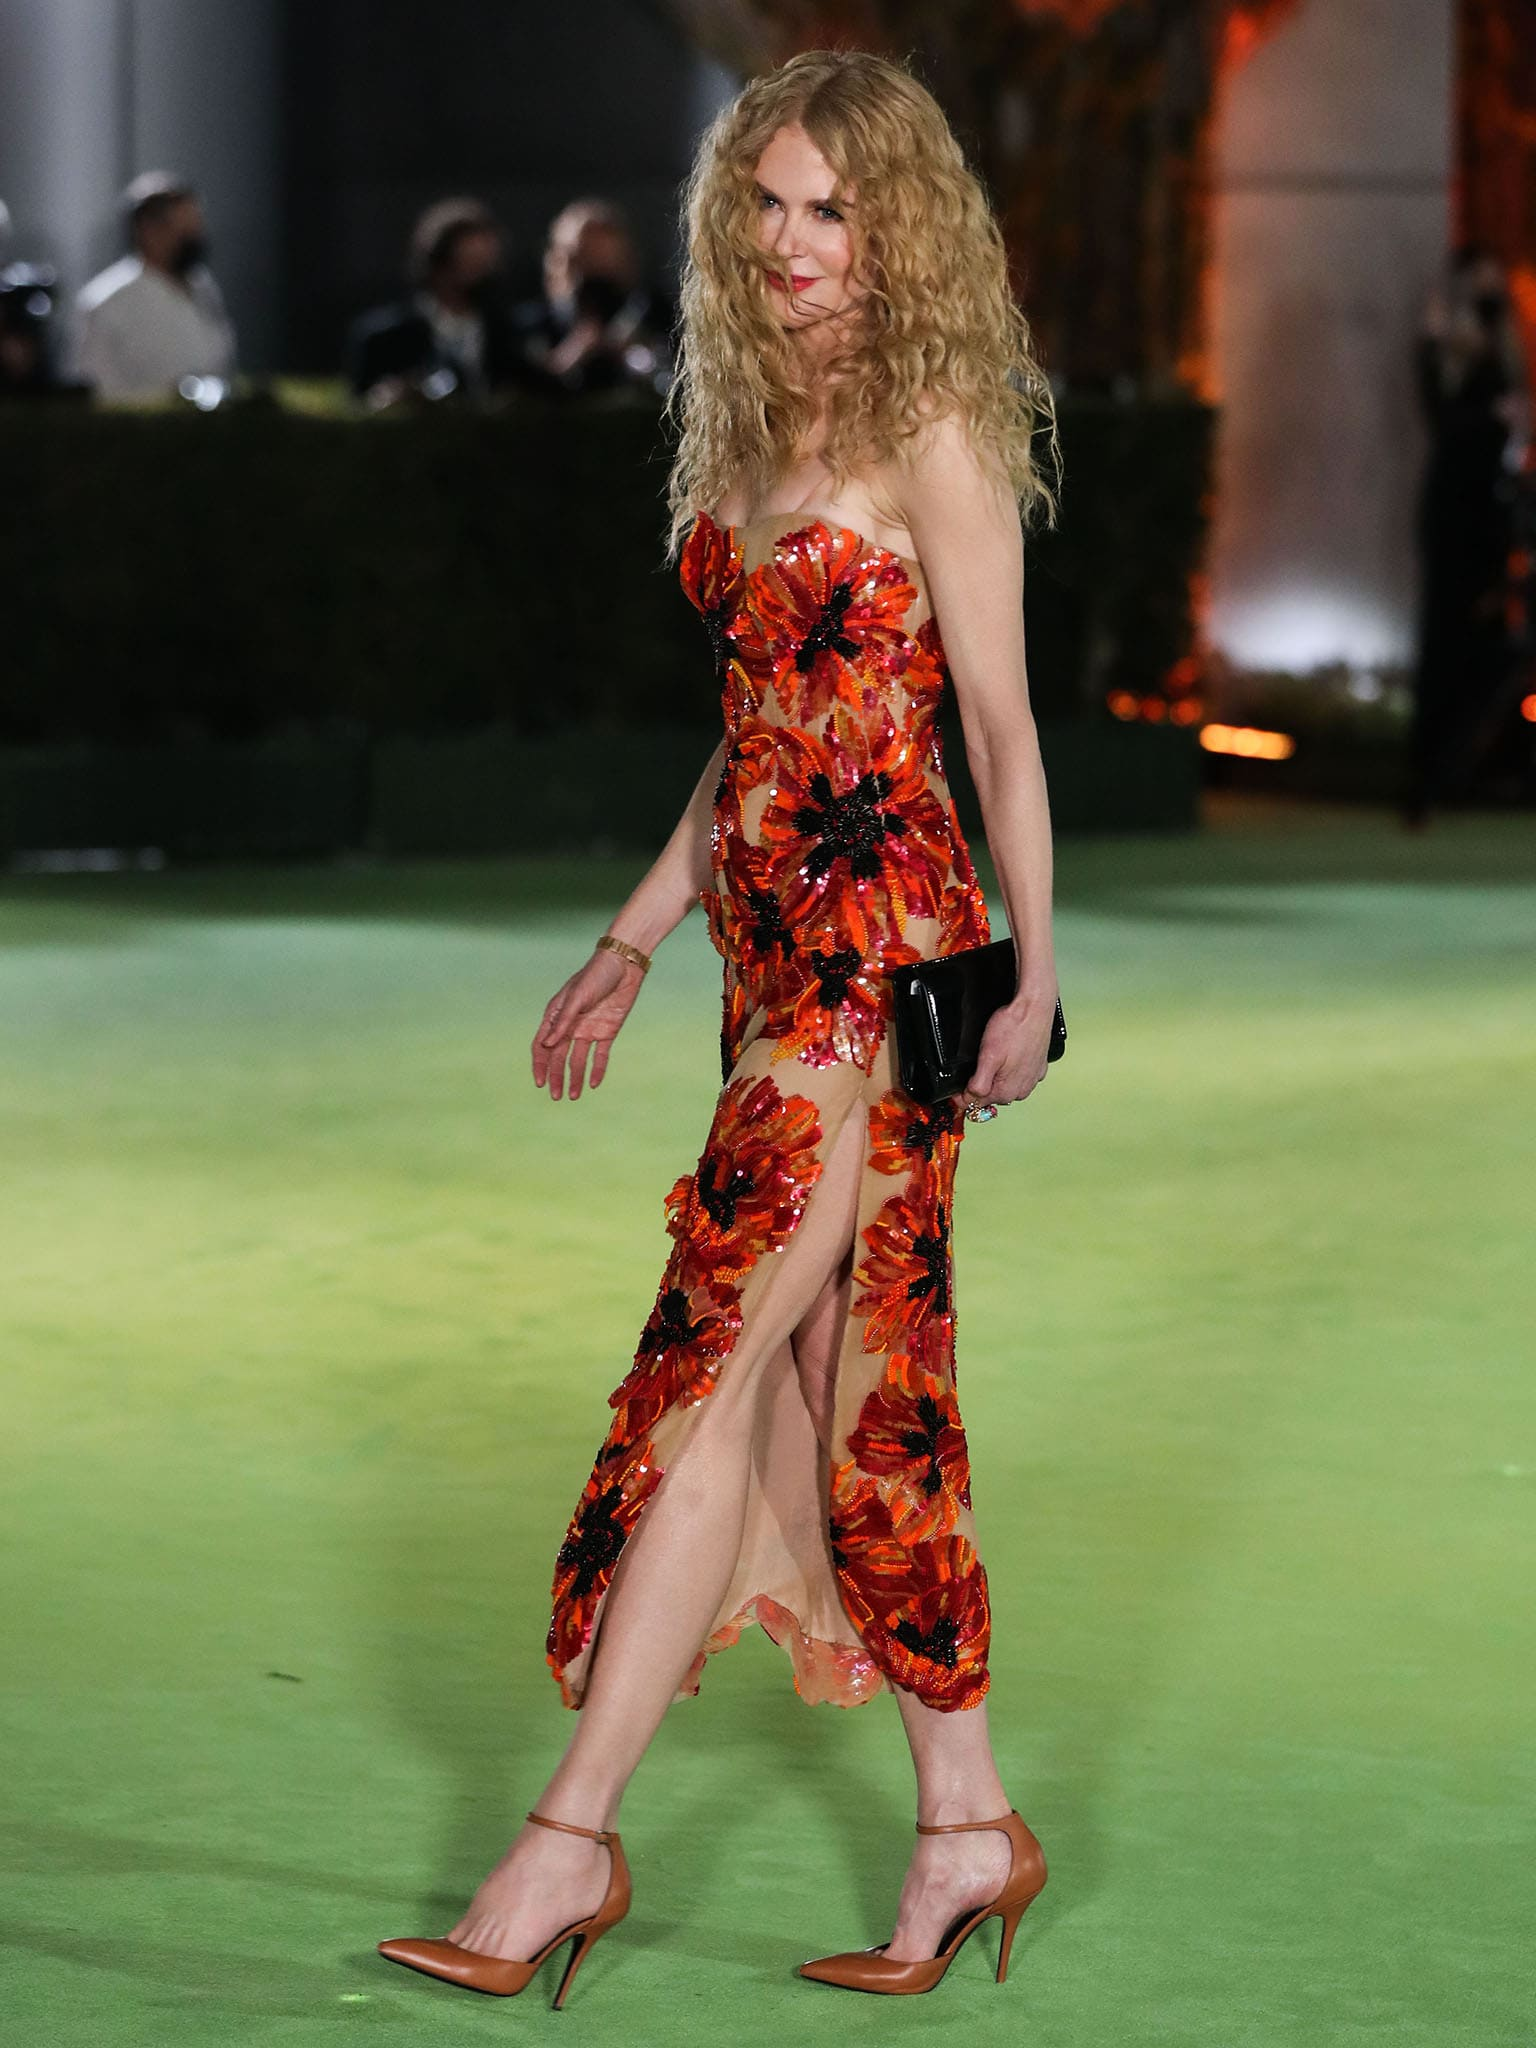 Nicole Kidman showcases her slim figure and slender legs in a hand-beaded red floral dress from Rodarte